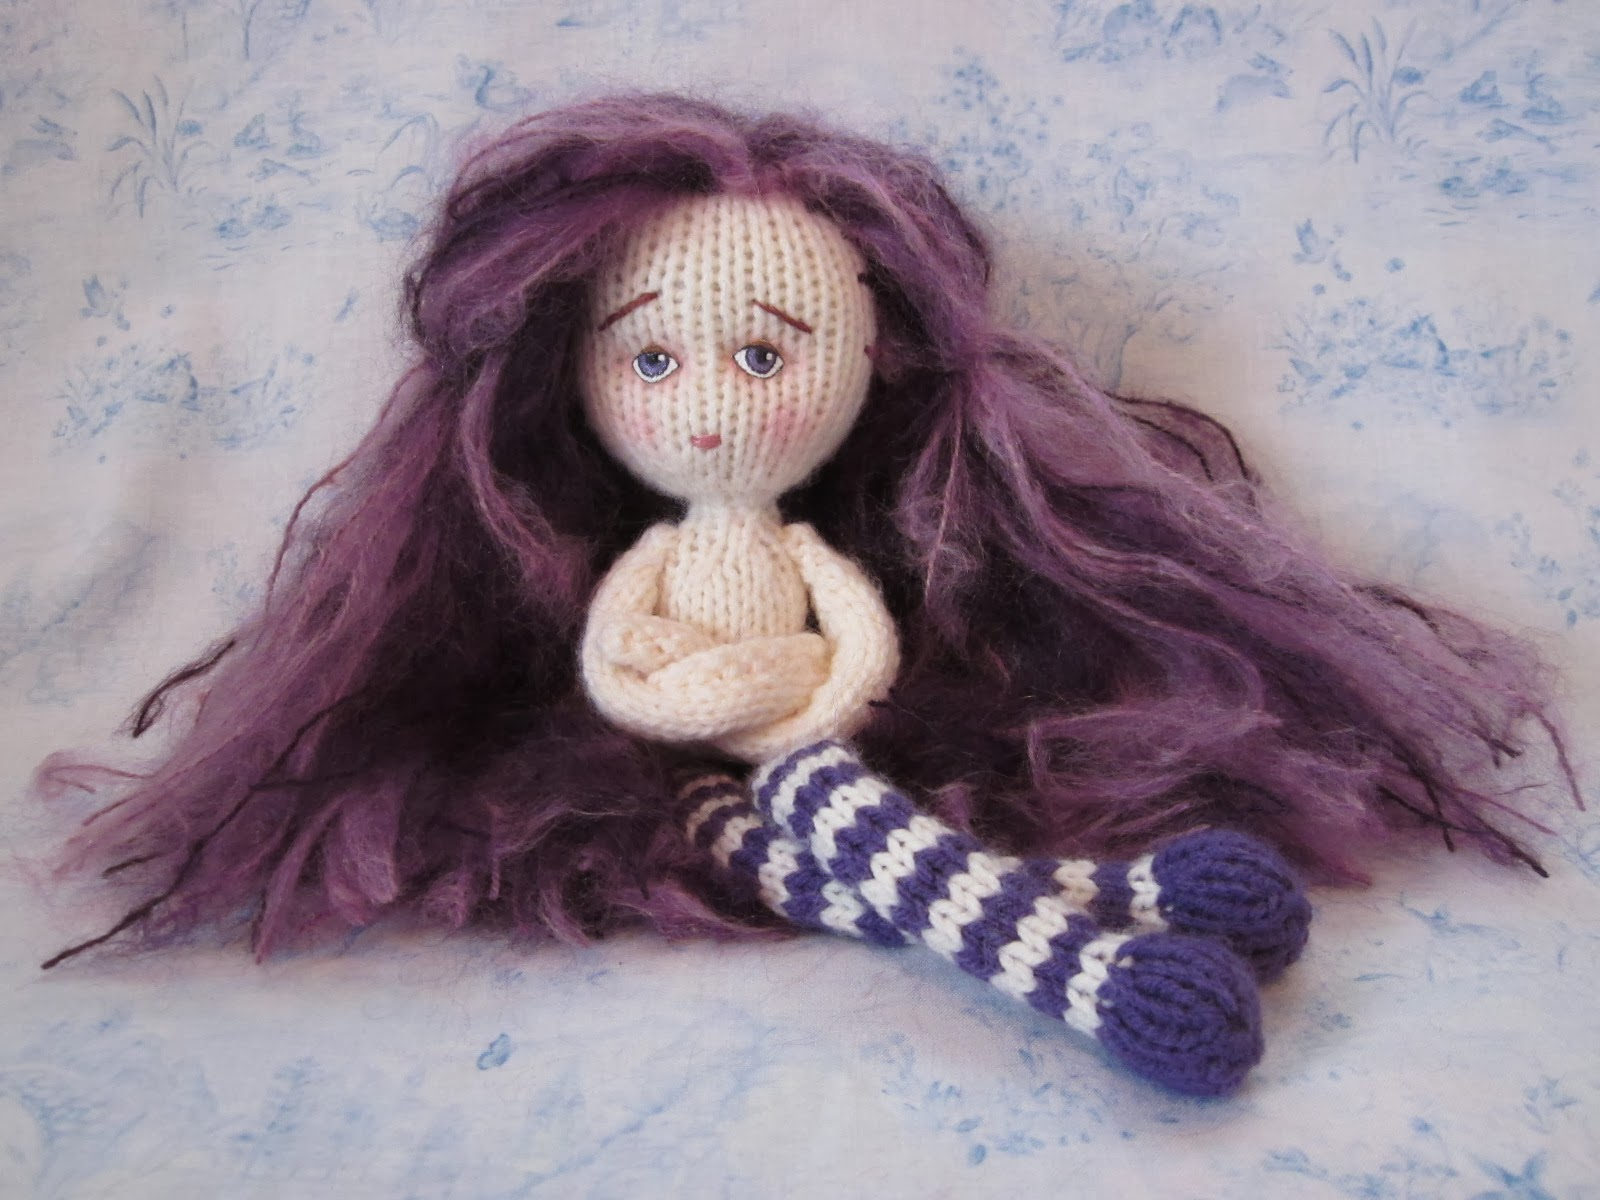 Free Knitting Pattern Mermaid Doll : By Hook, By Hand: Knit Travel Doll by Fiona McDonald